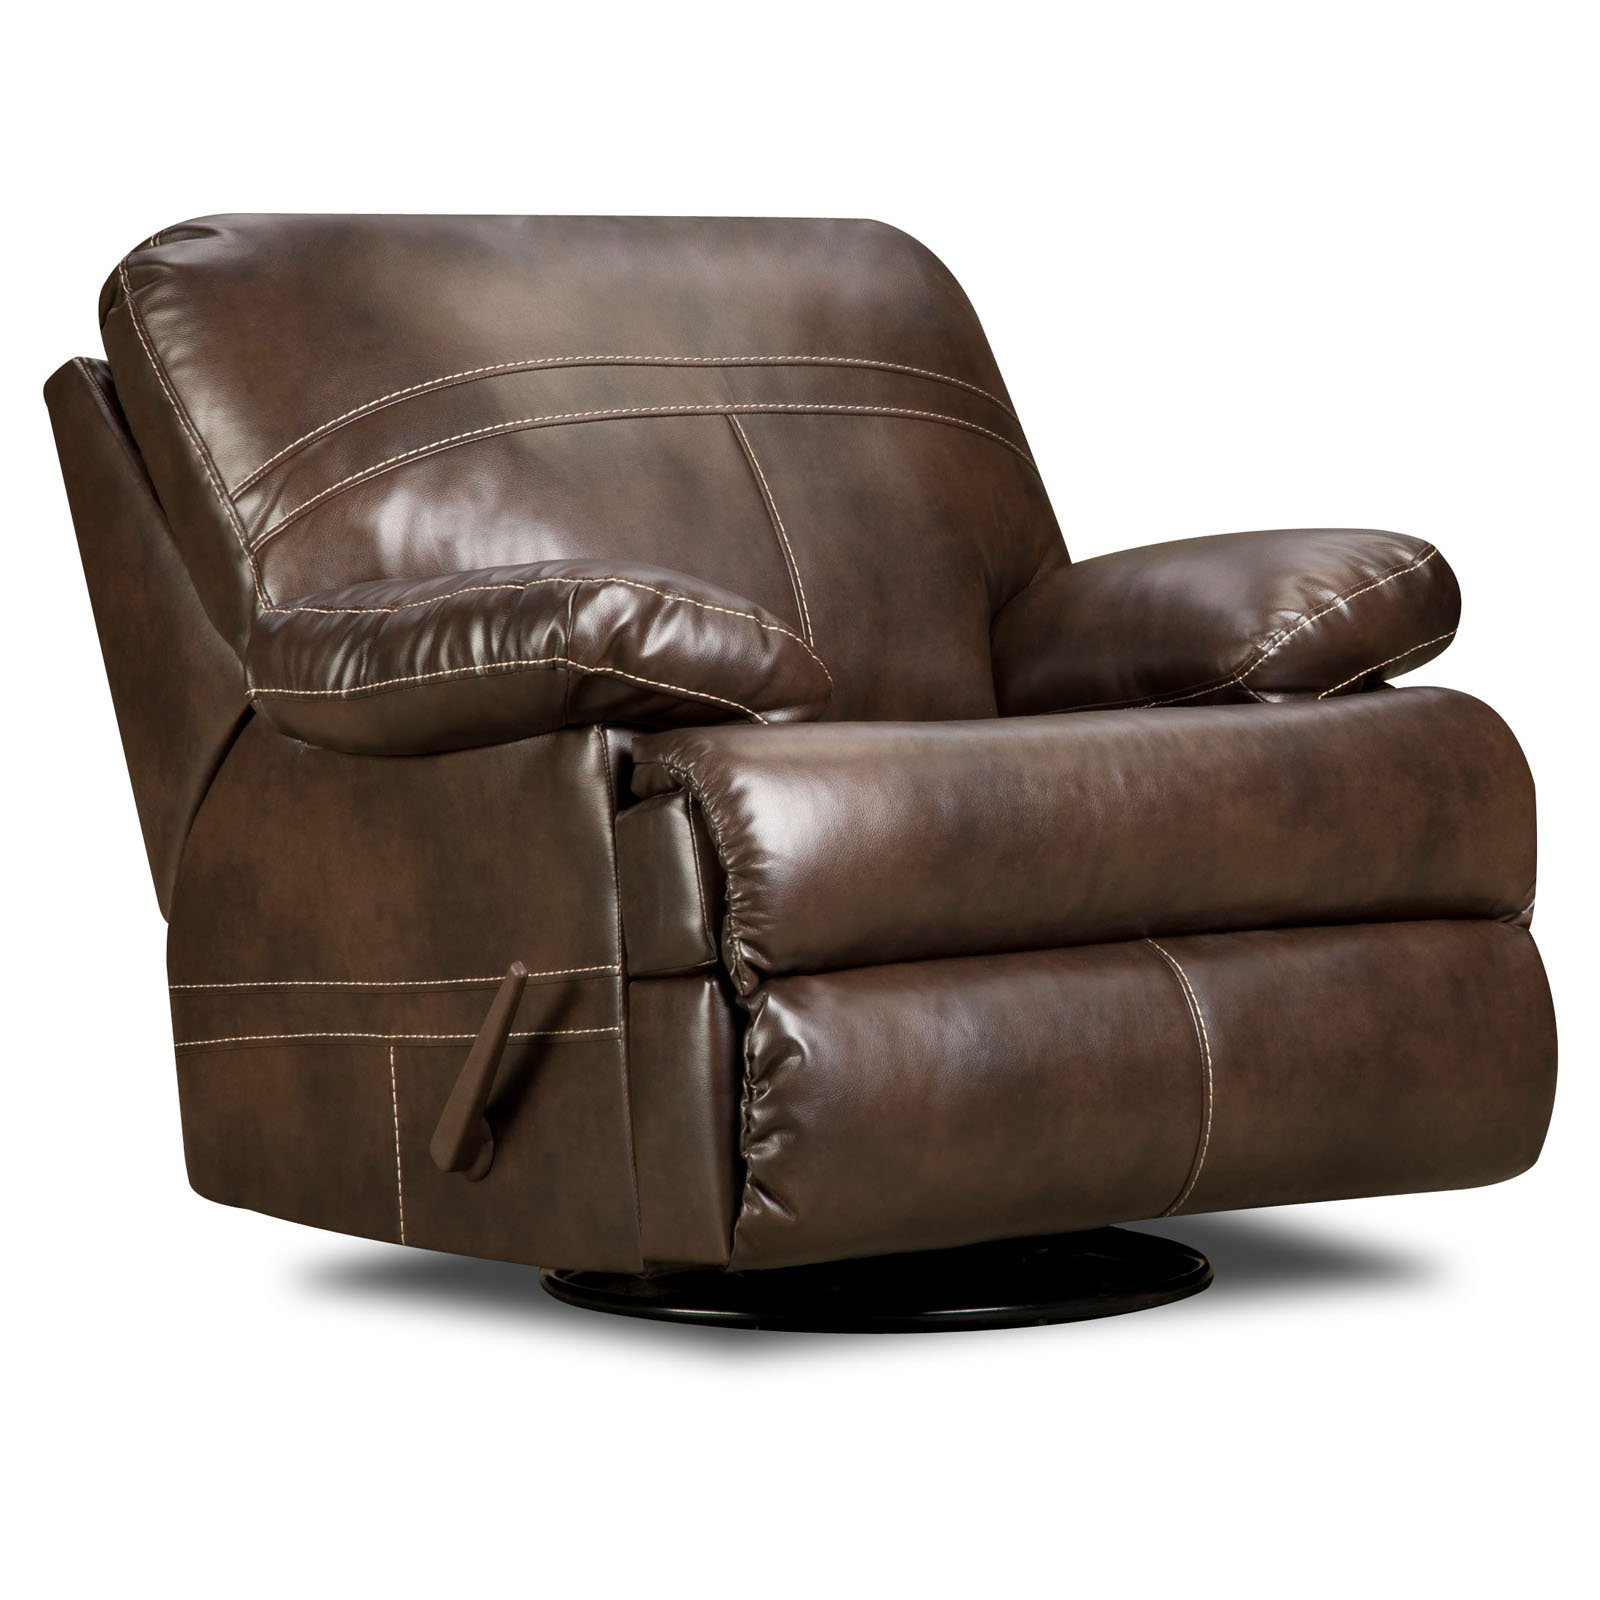 Furniture: Surprising Simmons Recliners For Contemporary Living Room For Rogan Leather Cafe Latte Swivel Glider Recliners (Photo 5 of 20)